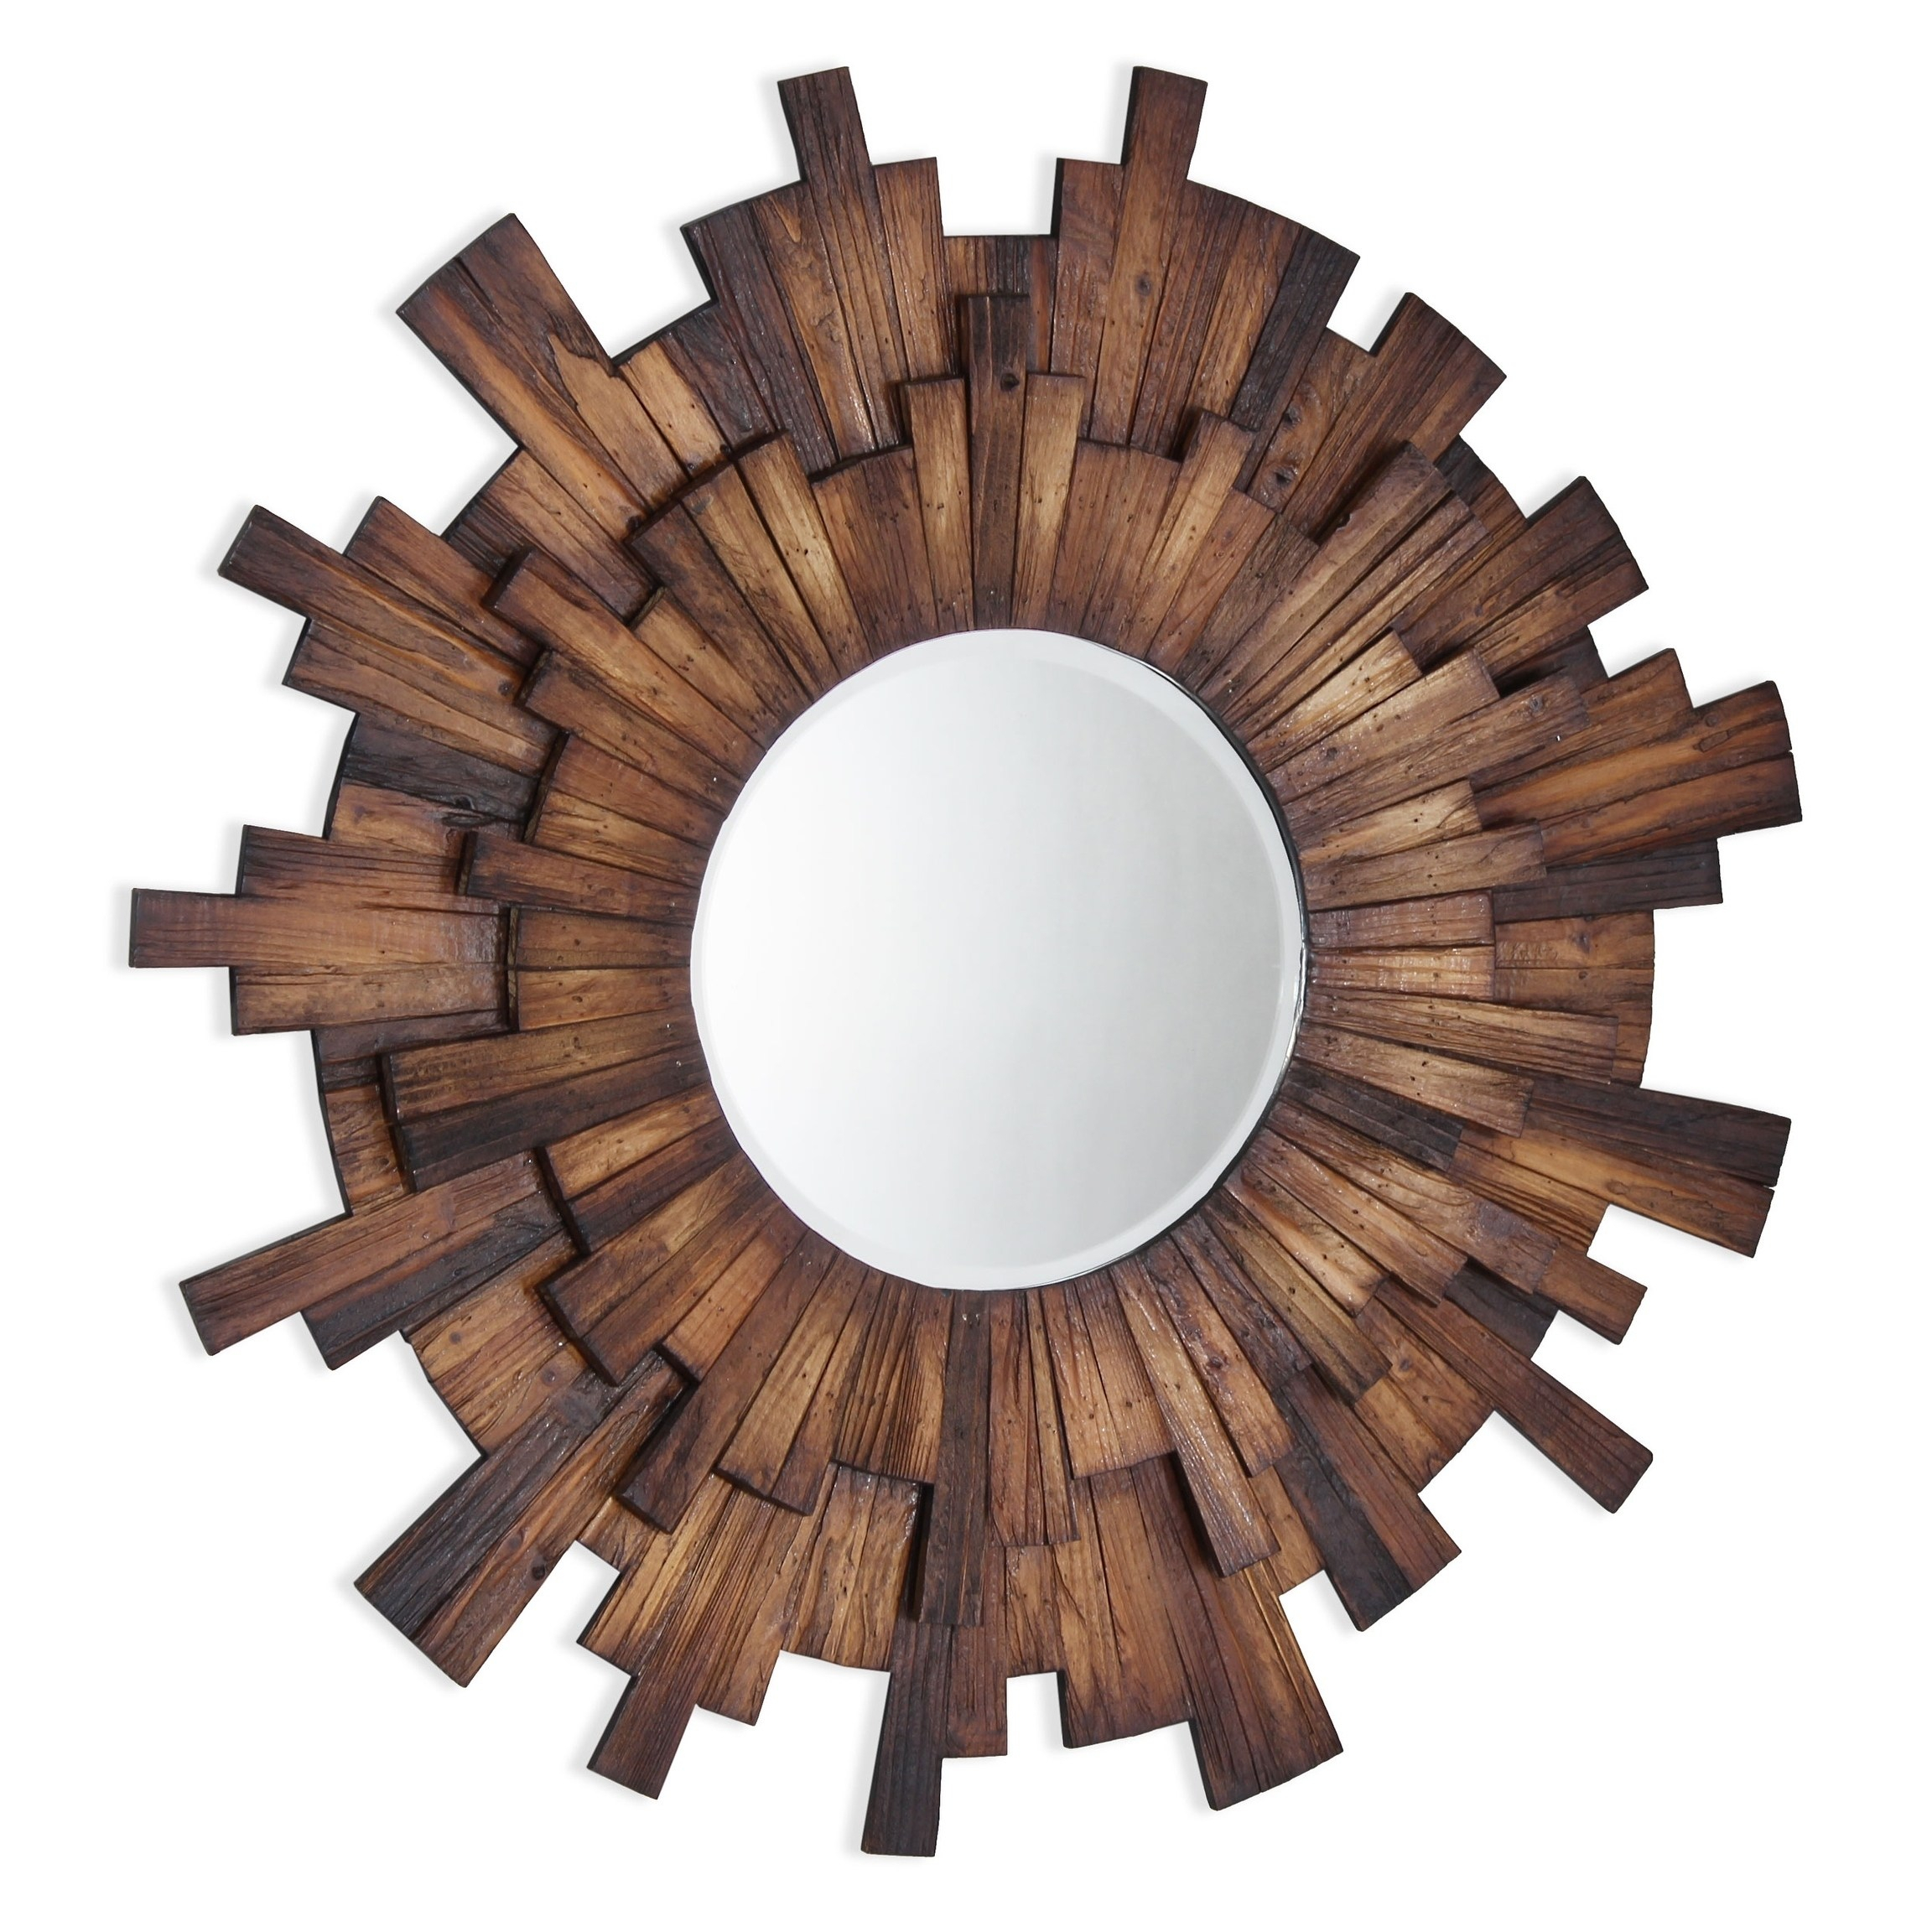 Eden Wood Framed Mirror – Brown/antique Brown – N/a/a, Gild For Perillo Burst Wood Accent Mirrors (Image 8 of 20)